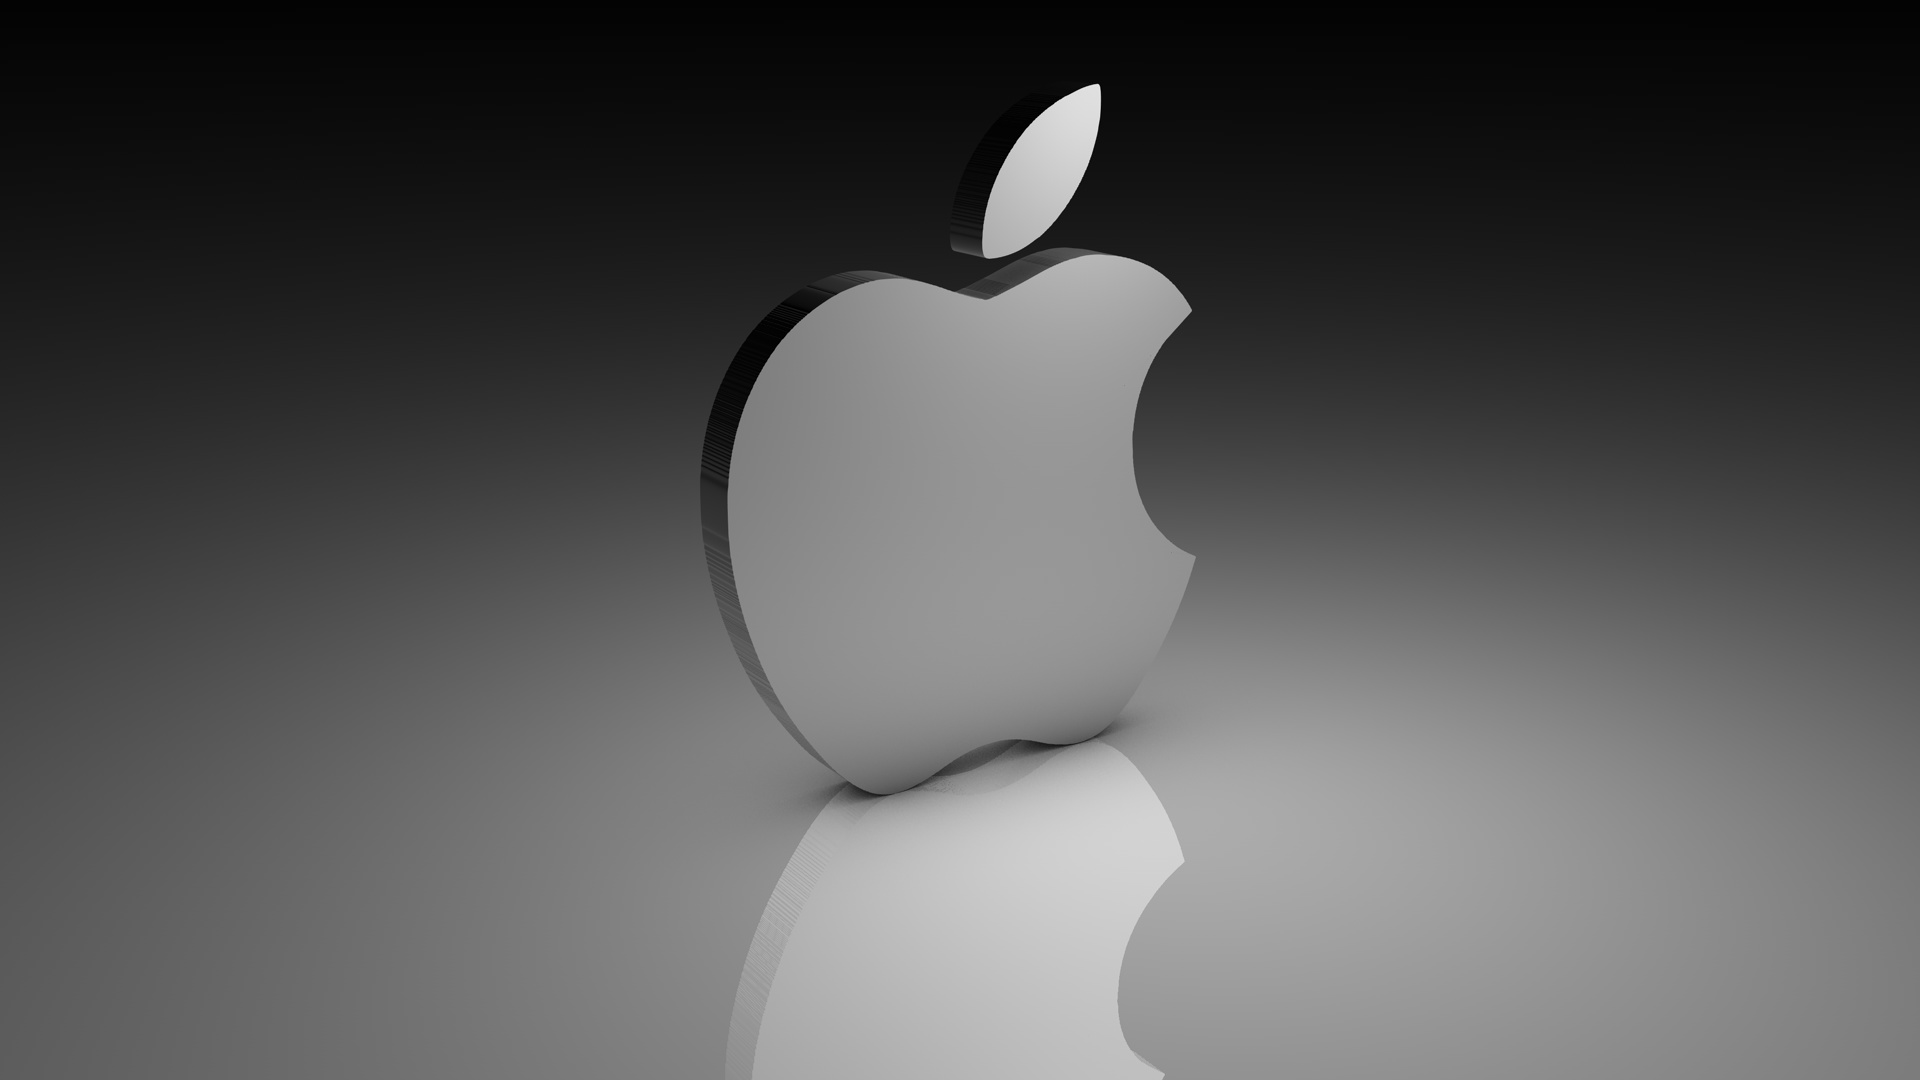 desktop-apple-logo-hd-wallpapers-download - relevant connections